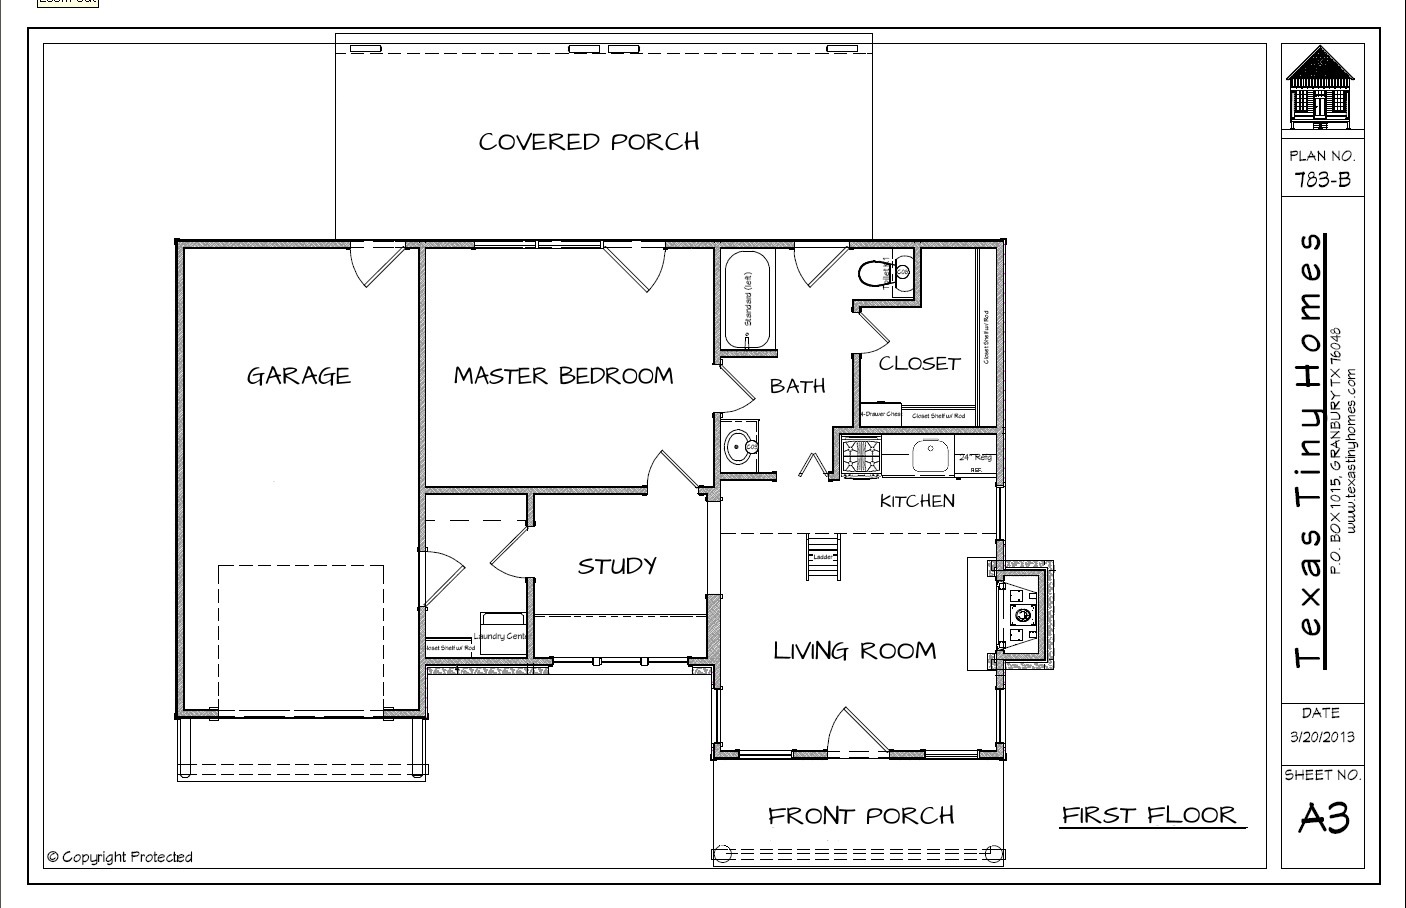 plan 783 texas tiny homes